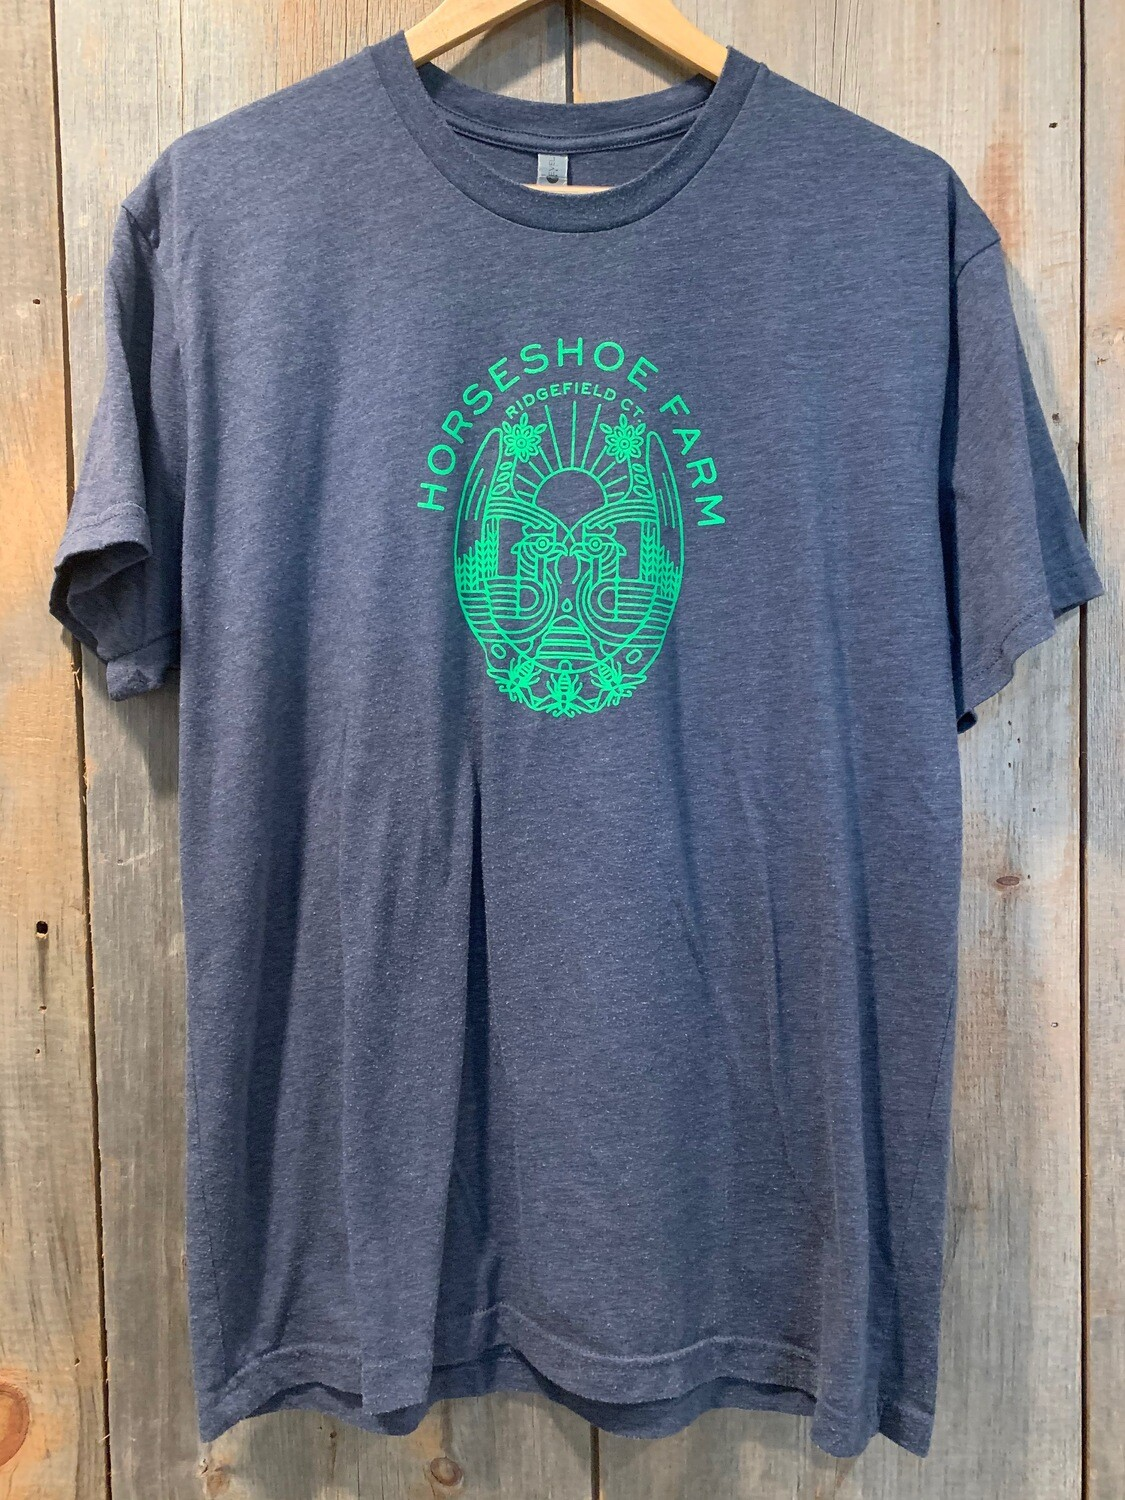 Horseshoe Farm T-Shirt